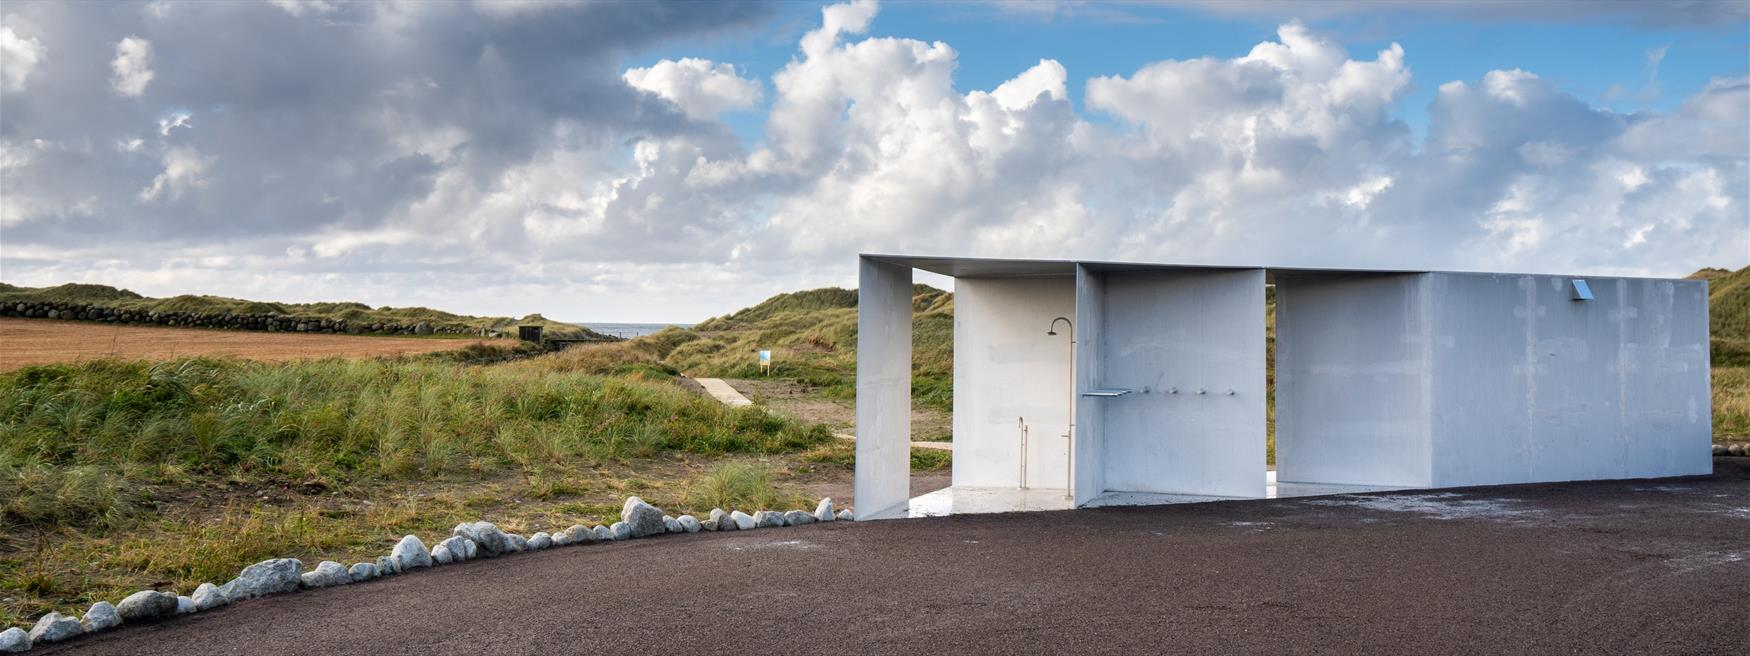 New tourist lavatory in aluminium is finished at Refsnes